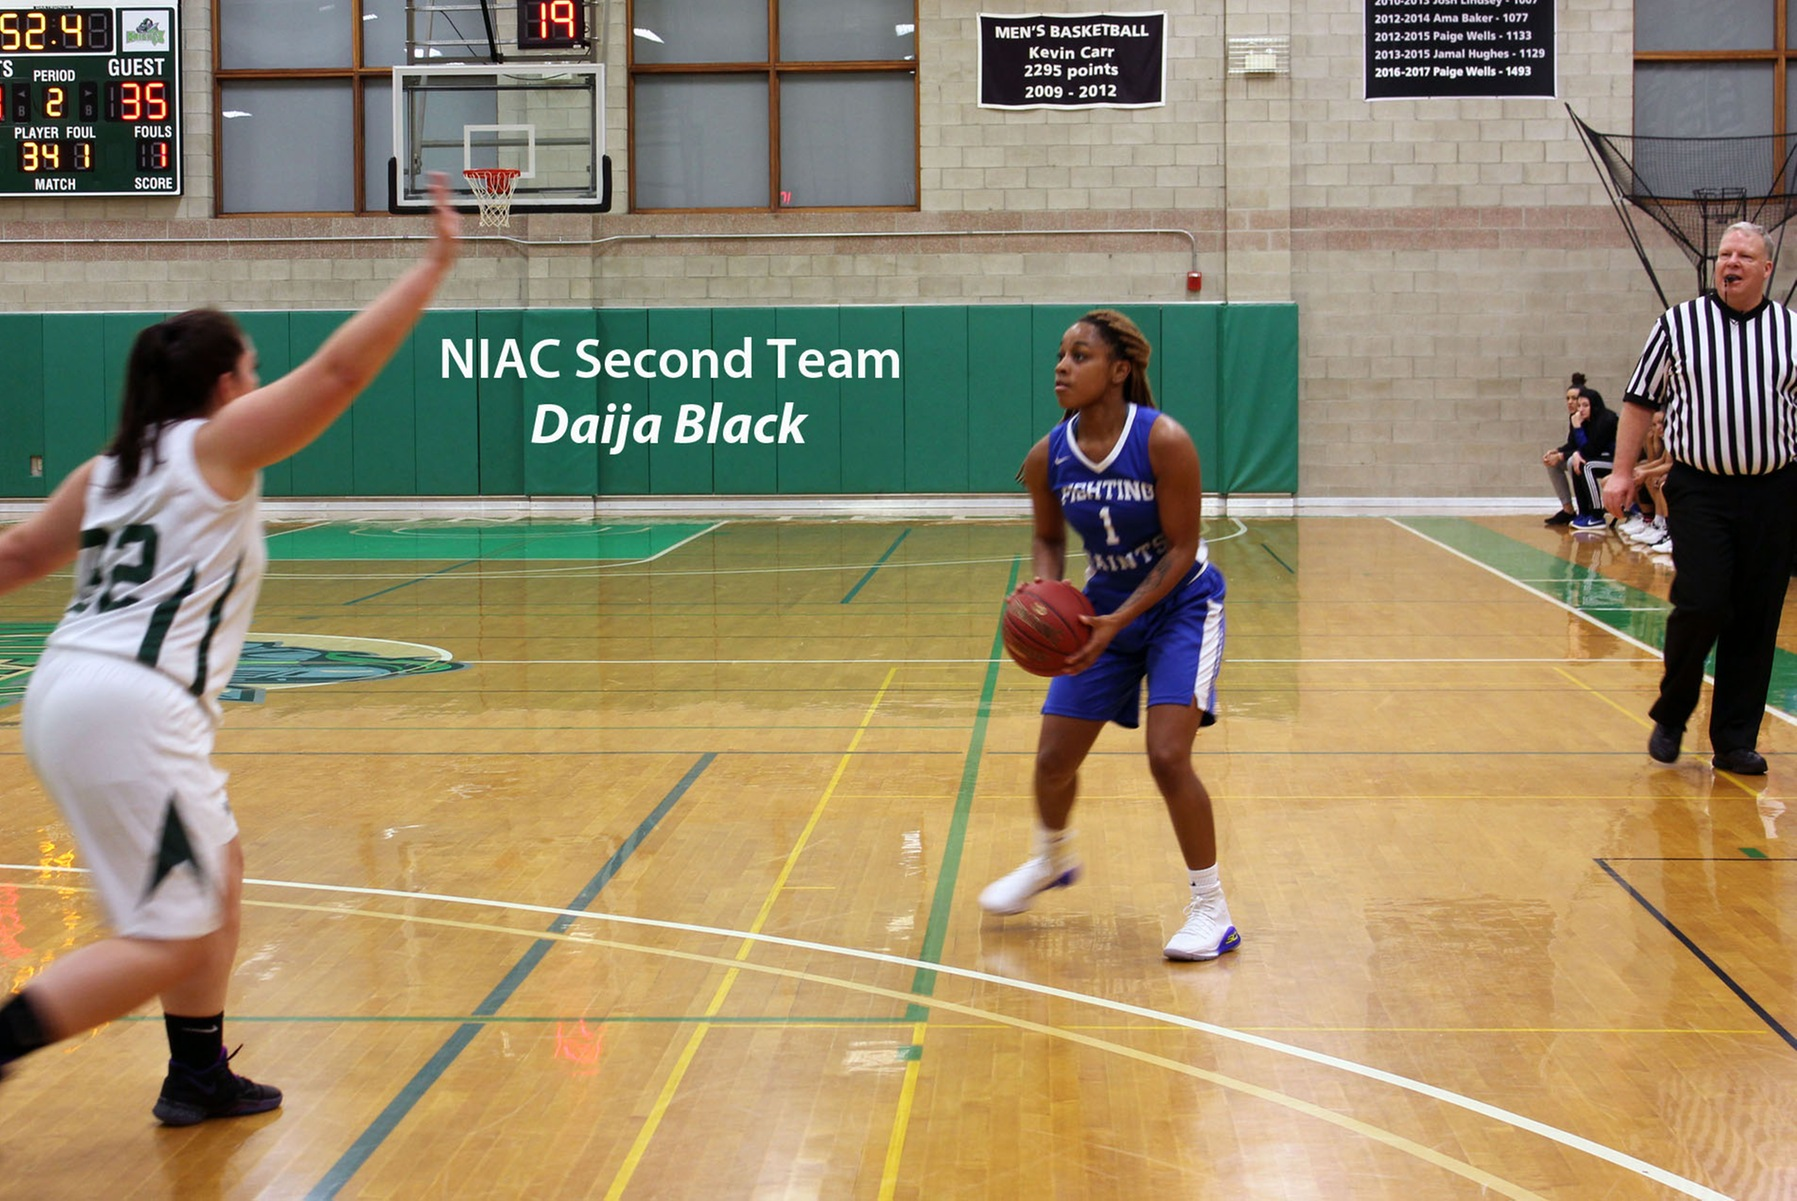 Black named to NIAC Second Team